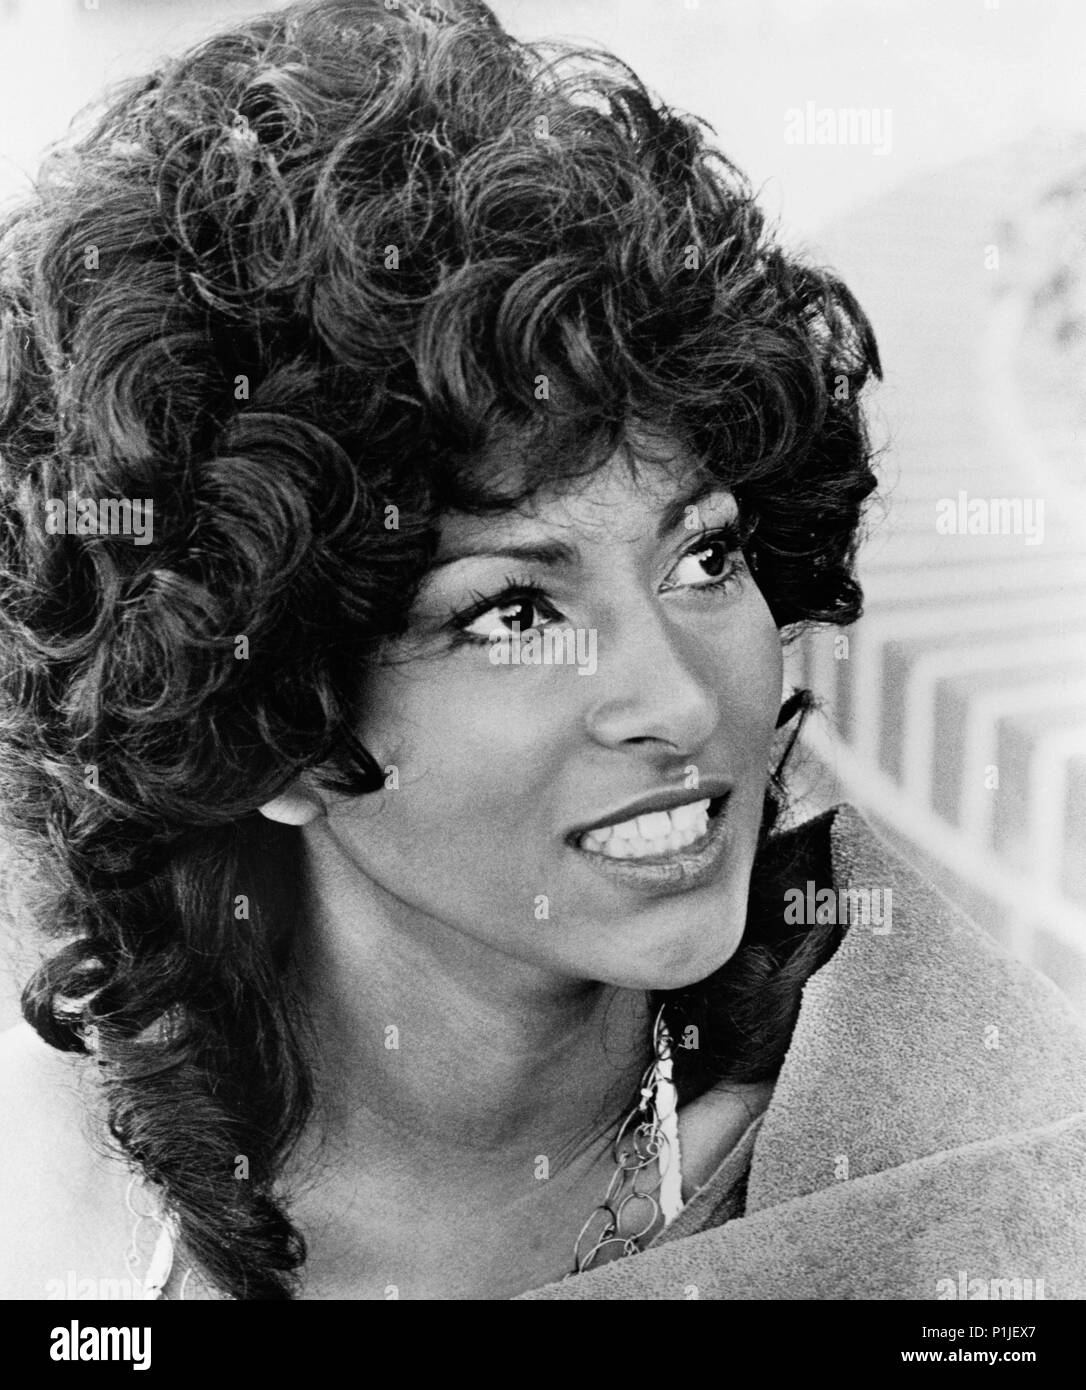 Original Film Title: COFFY.  English Title: COFFY.  Film Director: JACK HILL.  Year: 1973.  Stars: PAM GRIER. Credit: AIP / Album - Stock Image